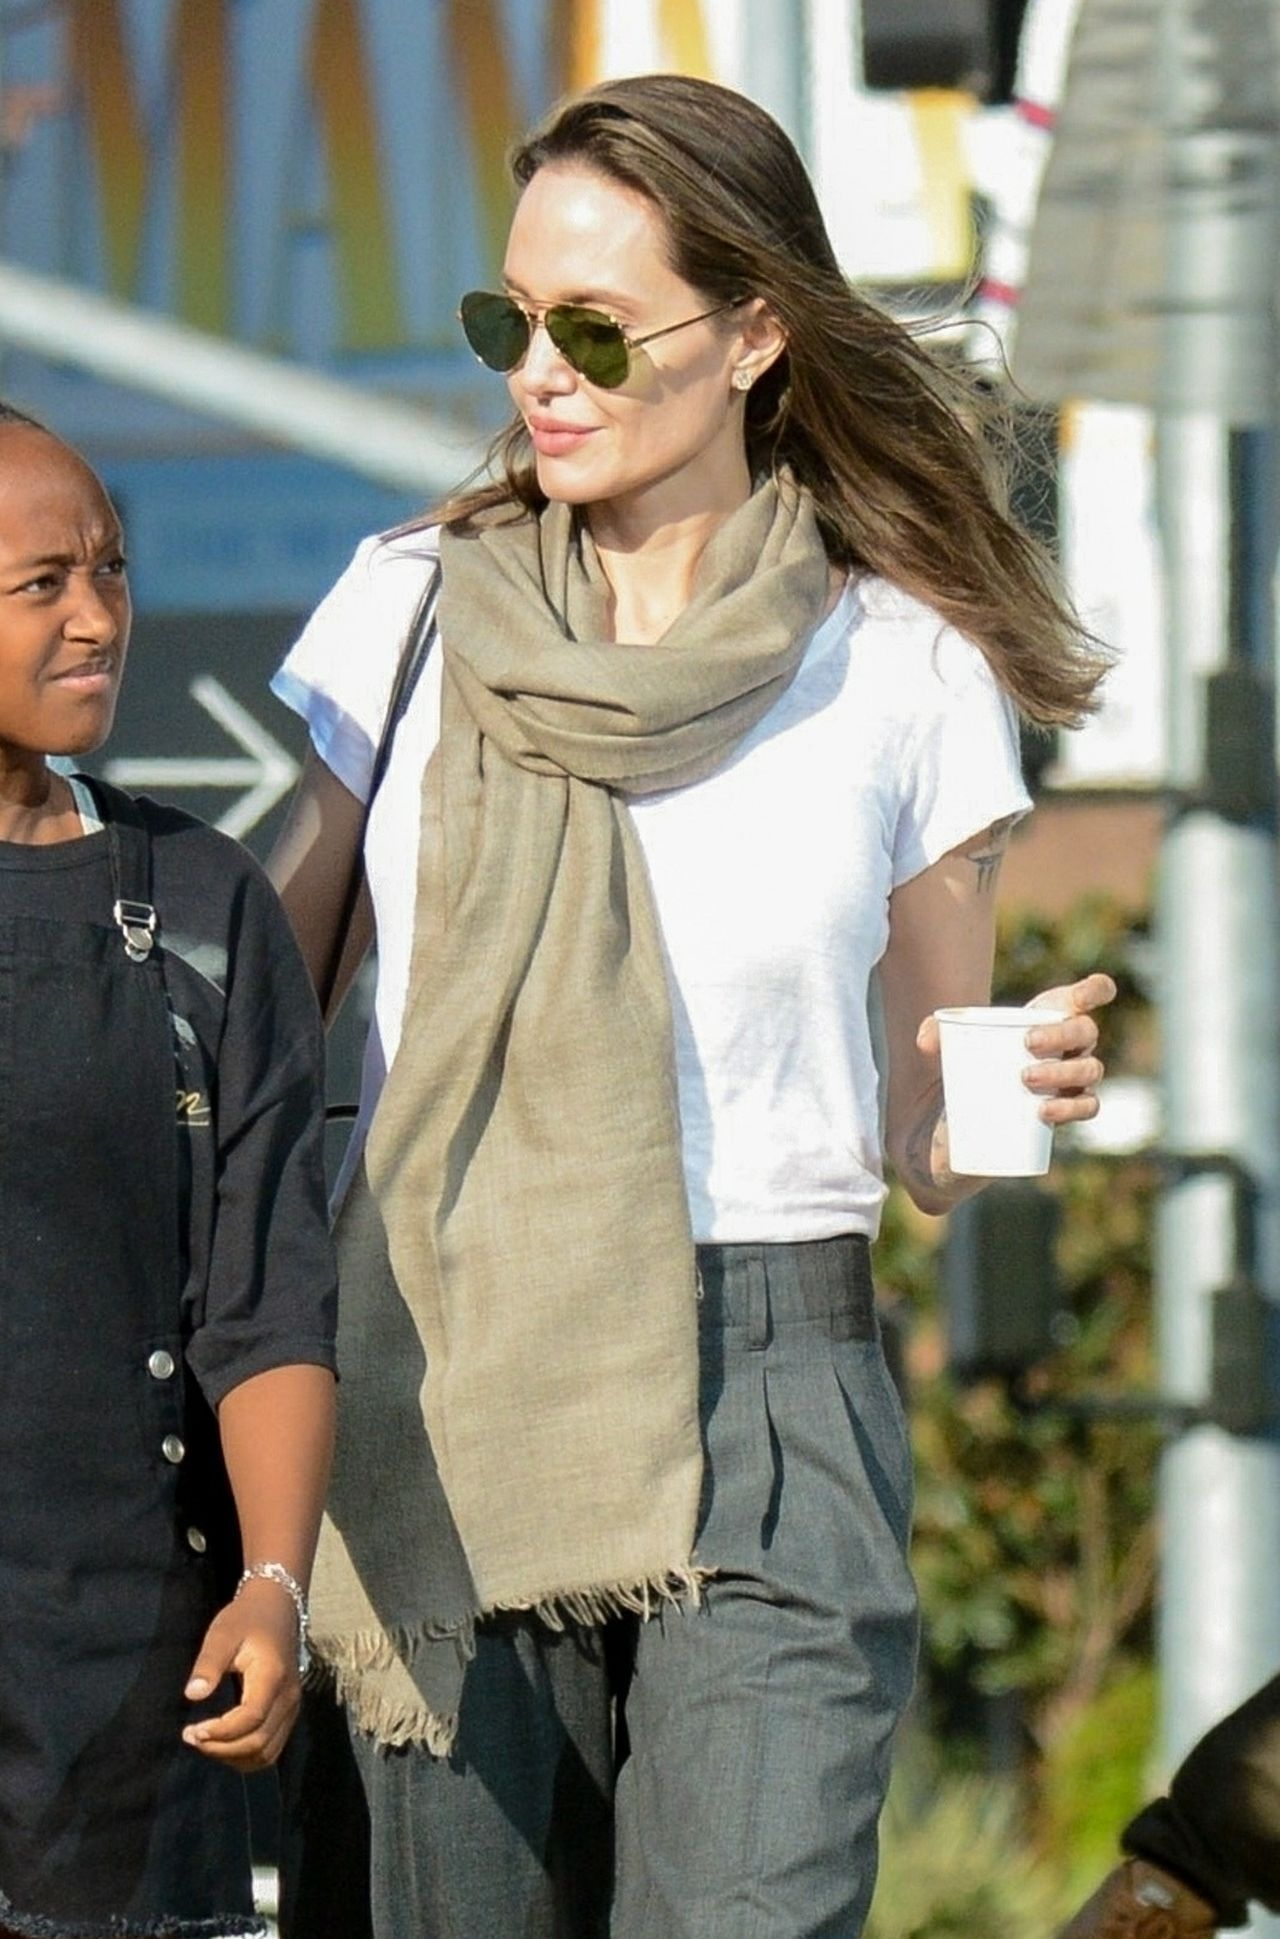 *EXCLUSIVE* Angelina Jolie goes on a shopping spree with her kids amidst Brad Pitt divorce drama Maddox Chivan Jolie-Pitt, Angelina Jolie, Zahara Marley Jolie-Pitt